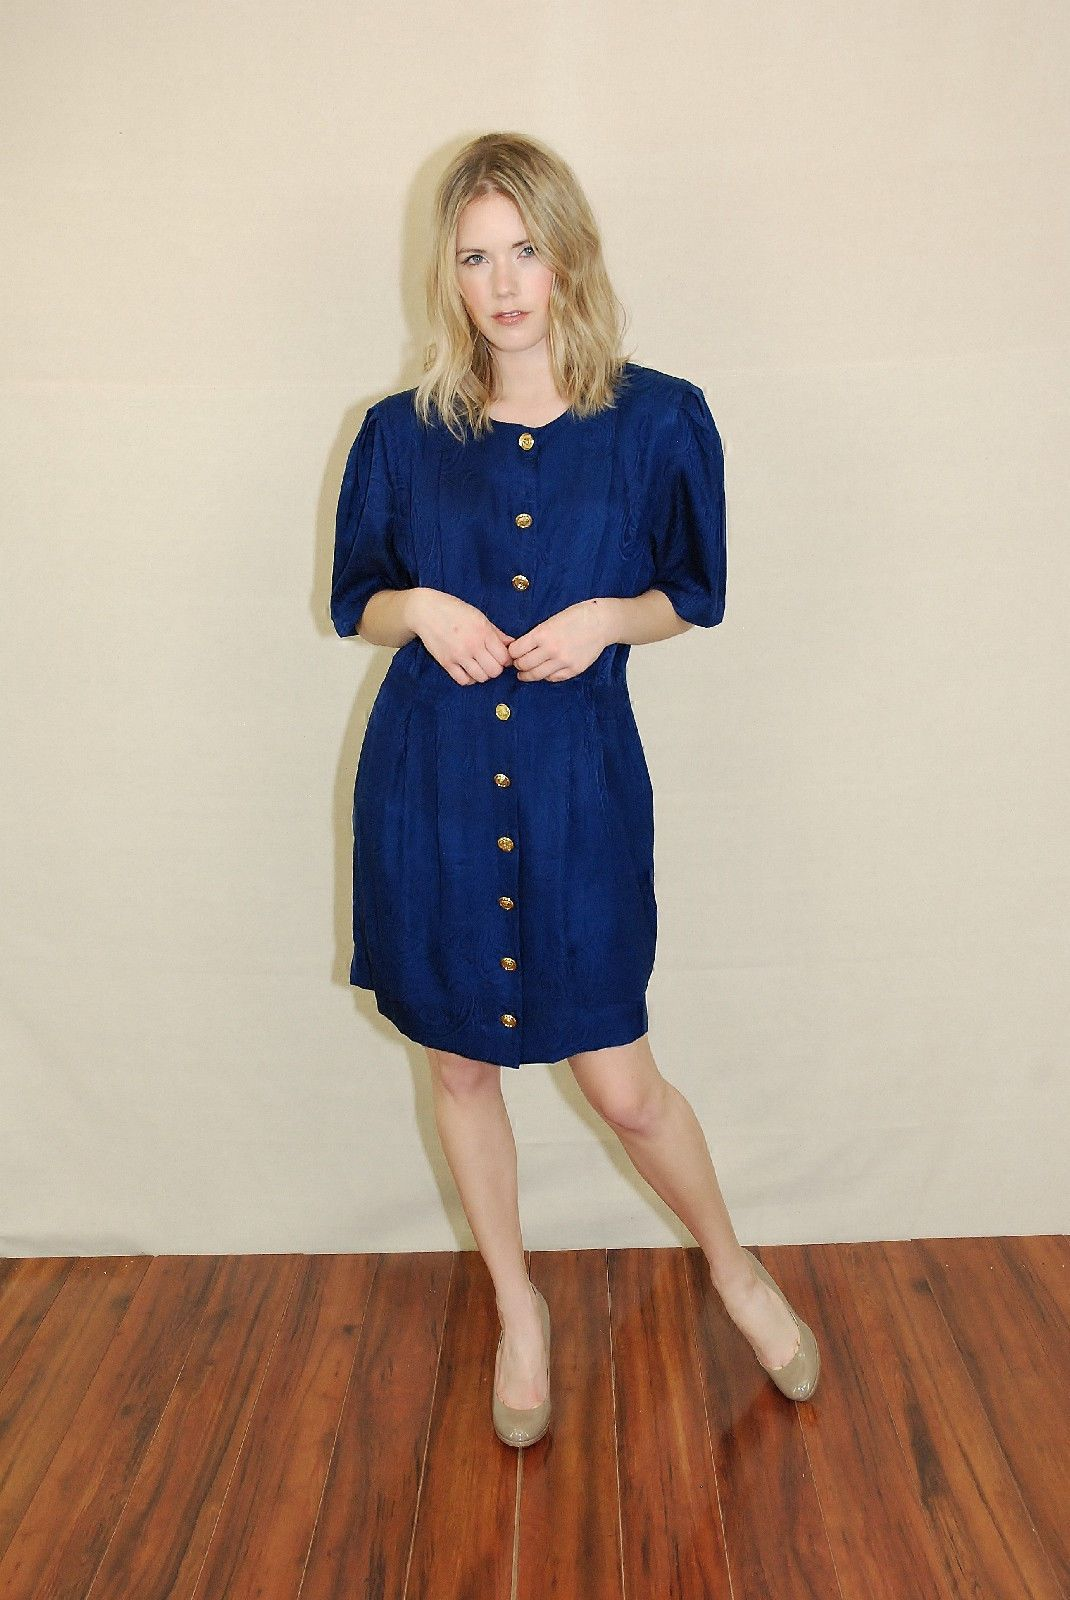 Vtg 70s Navy Silk Paisley Pleated Boho Secretary Party Mini Dress M | eBay